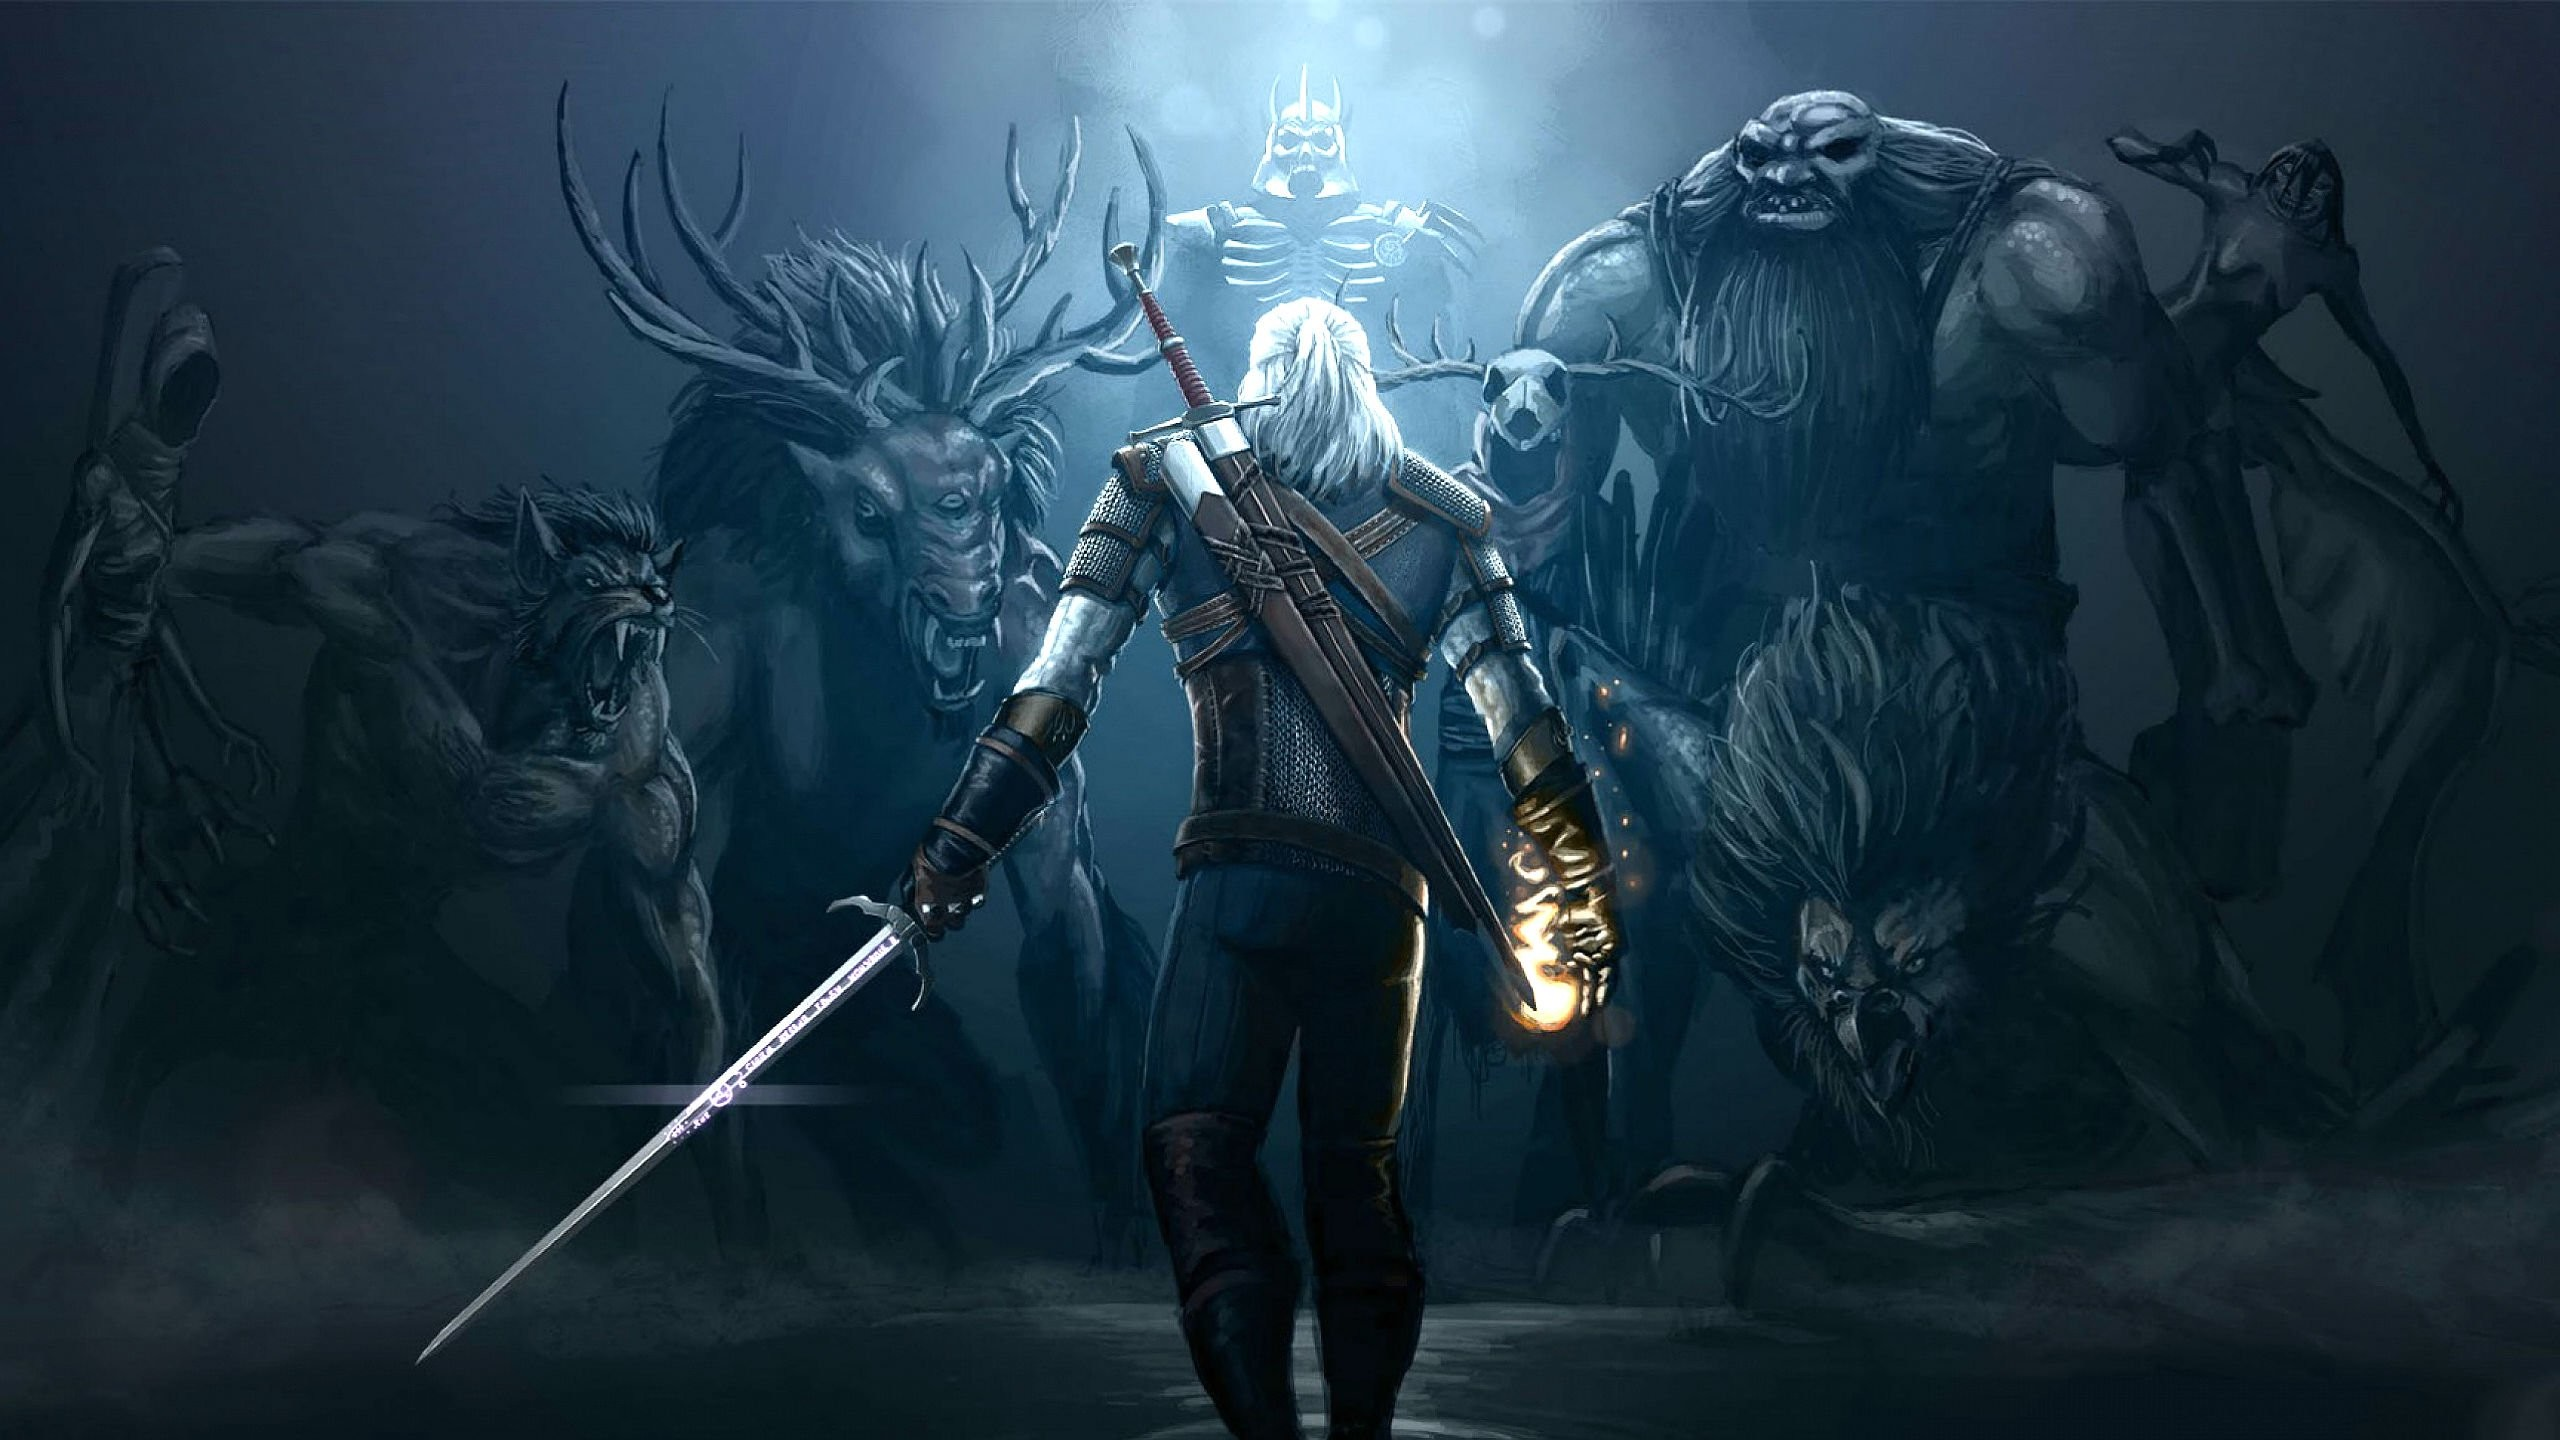 2560x1440 Action Witcher Vector Wallpapers Fighting Witcher Wallpaper 4k 2560x1440 Wallpaper Teahub Io